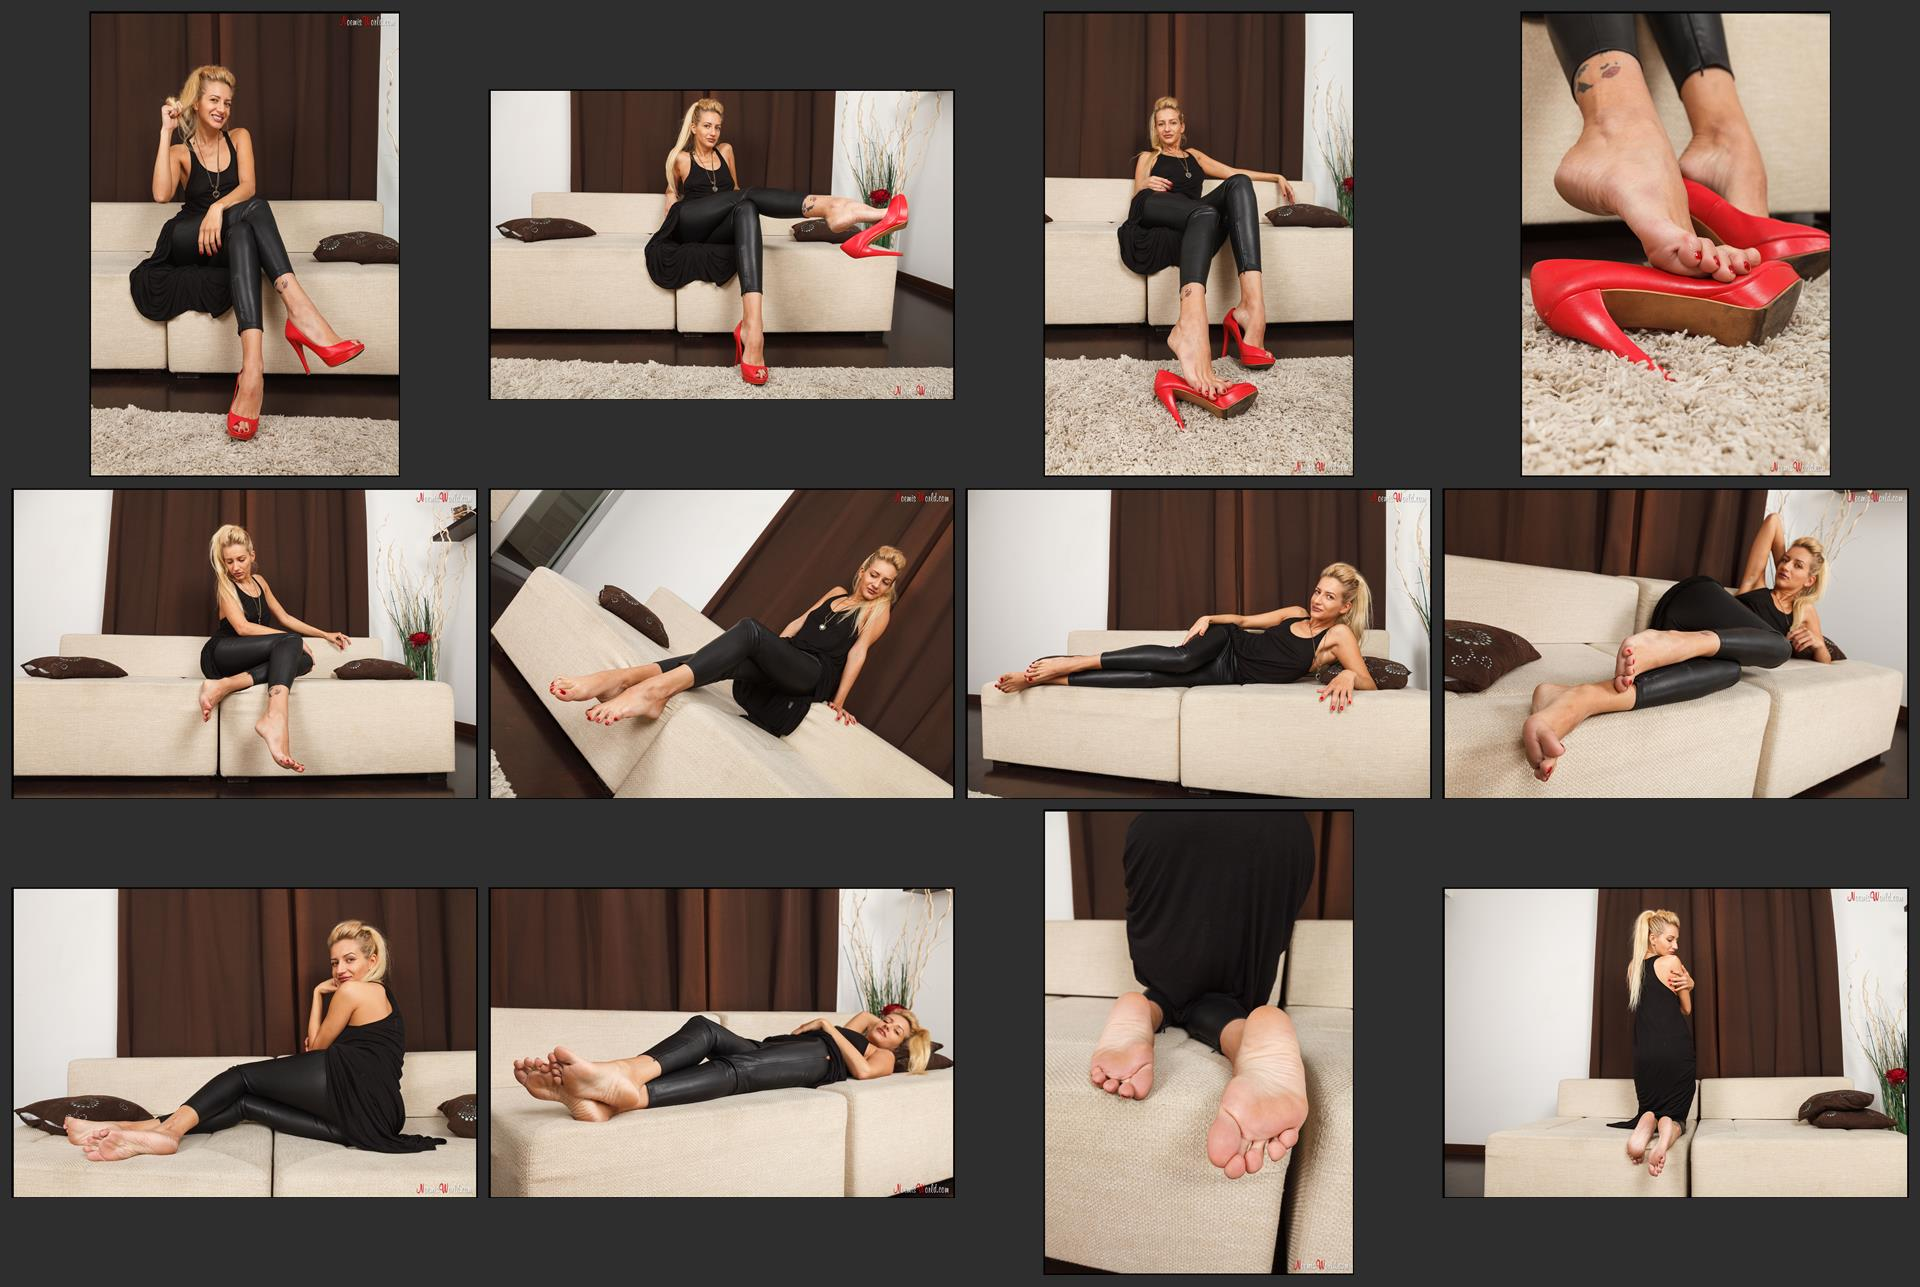 Noemi's World - Pearl - Blonde girl will rub her rough soles on your face - Femdom Pictures